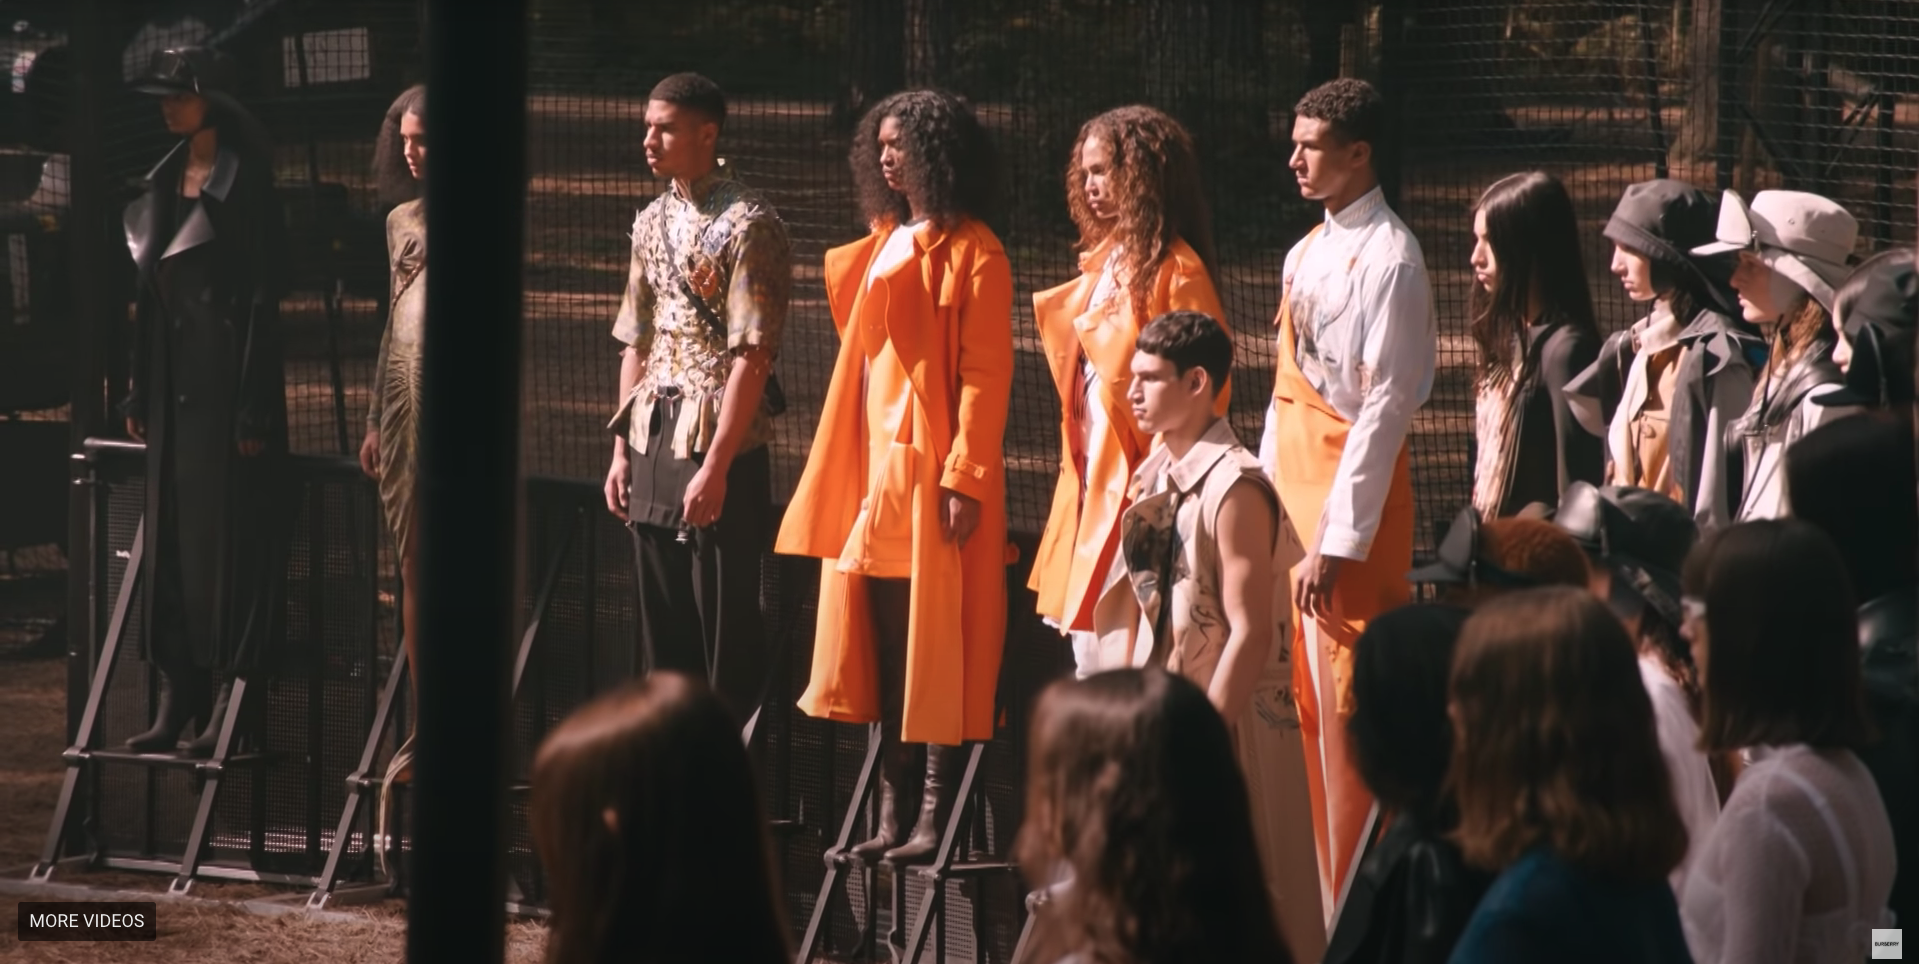 London Fashion Week SS21 Highlights: The Good, The Bad, And The Apocalyptic